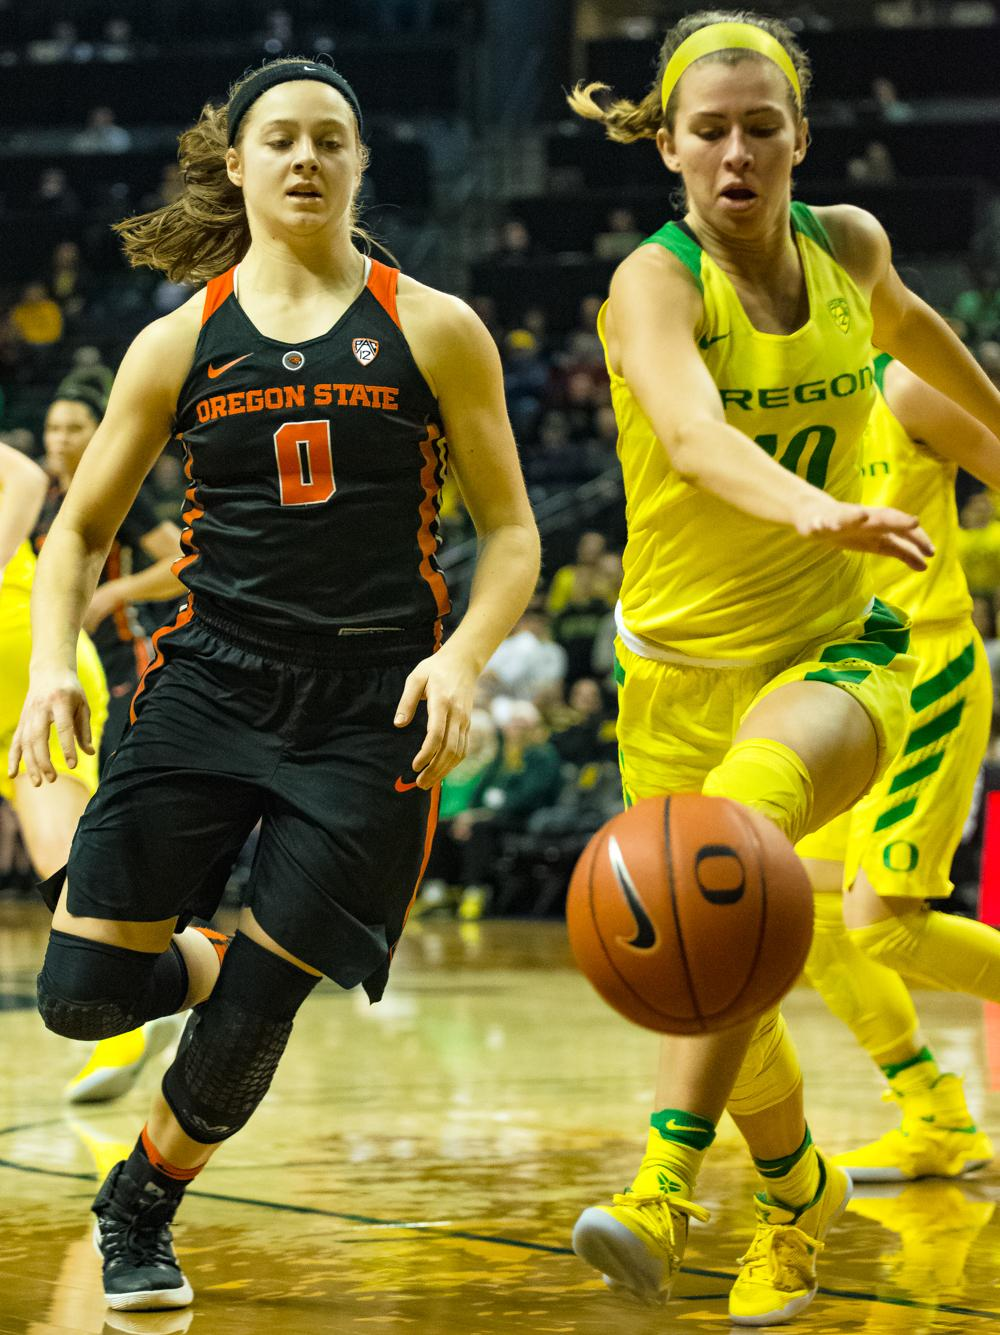 Oregon Ducks Guard Lexi Bando (#10) chases down a loose ball against Oregon State Guard Mikayla Pivec (#0). Oregon Ducks lost 40-43 to Oregon State Beavers in a tightly matched fourth quarter. Photo by Jonathan Booker, Oregon News Lab